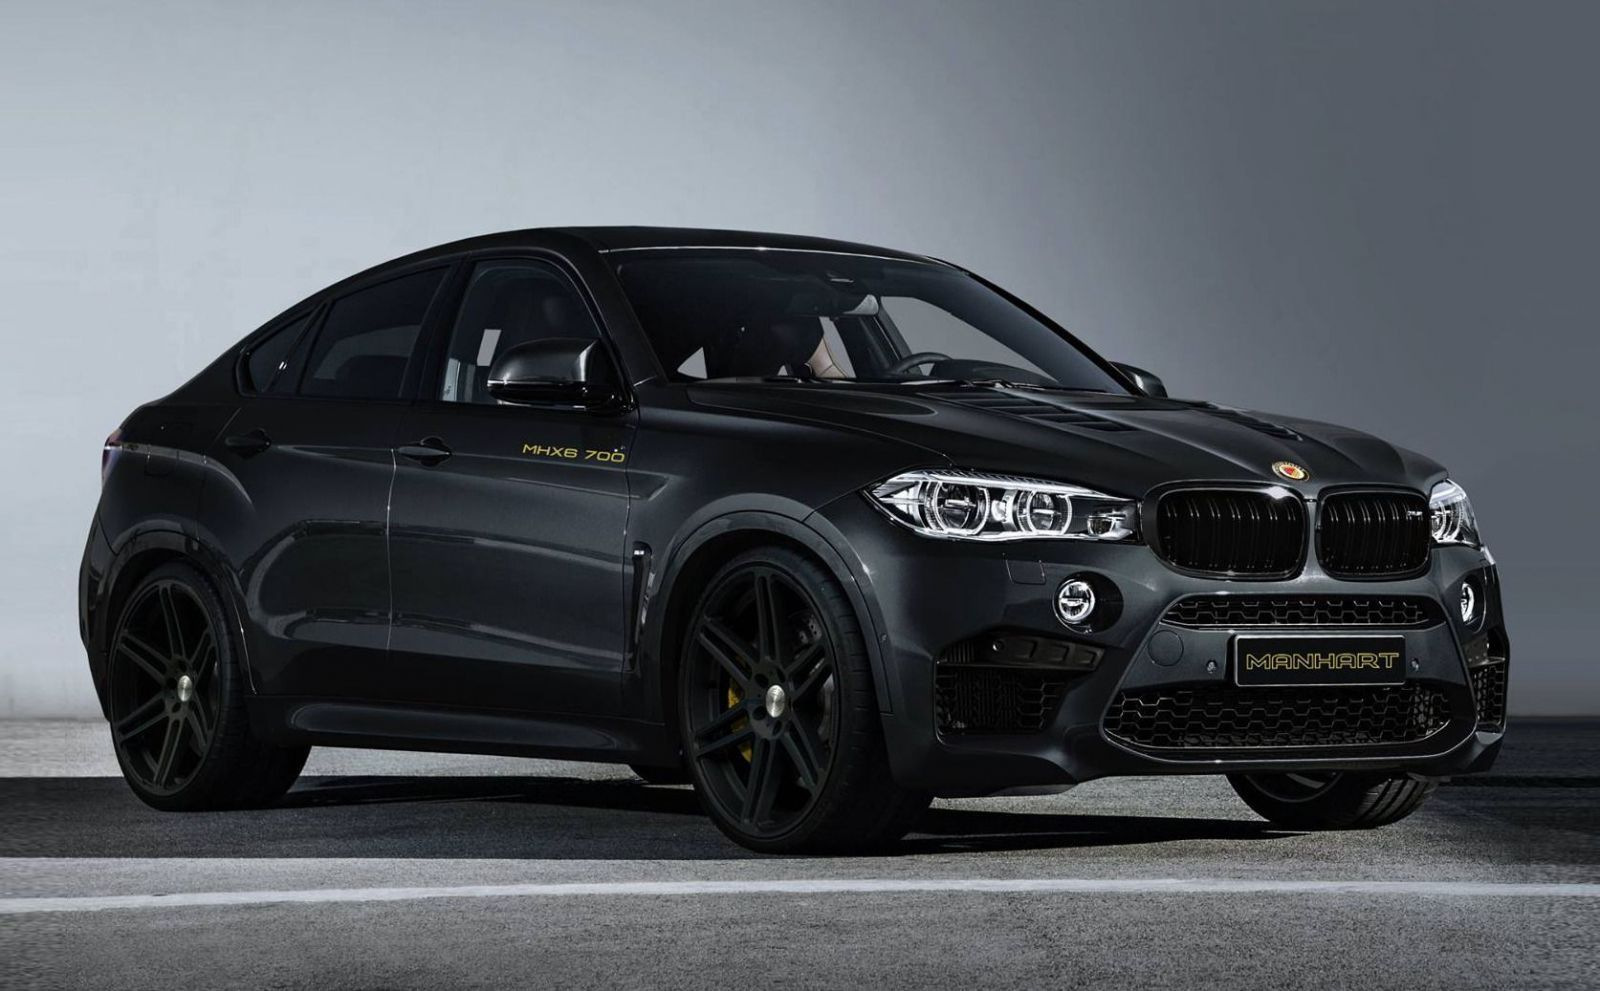 Suv bmw x6 tuning check out these bimmers http germancars everythingaboutgermany com bmw bmw html luxury sport cars pinterest bmw x6